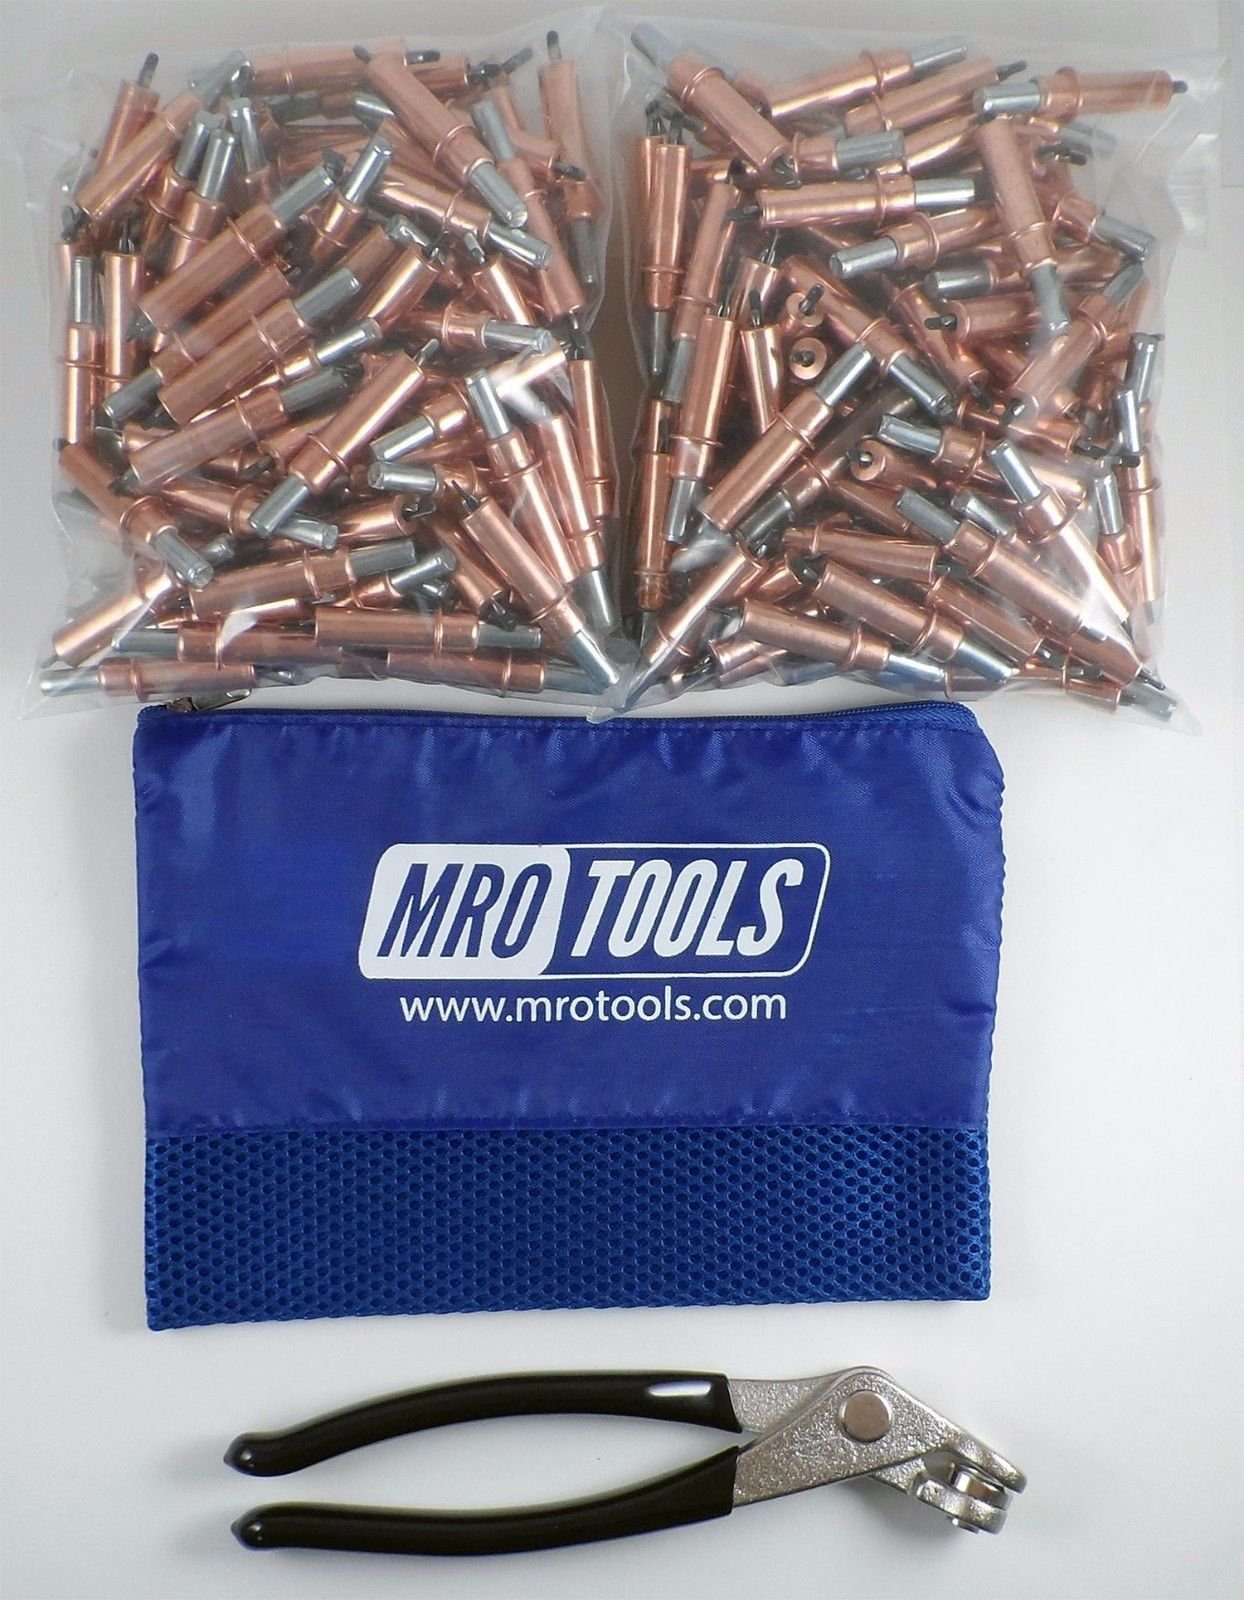 250 1/8 Cleco Sheet Metal Fasteners + Cleco Pliers w/ Carry Bag (K1S250-1/8) by MRO Tools Cleco Fasteners